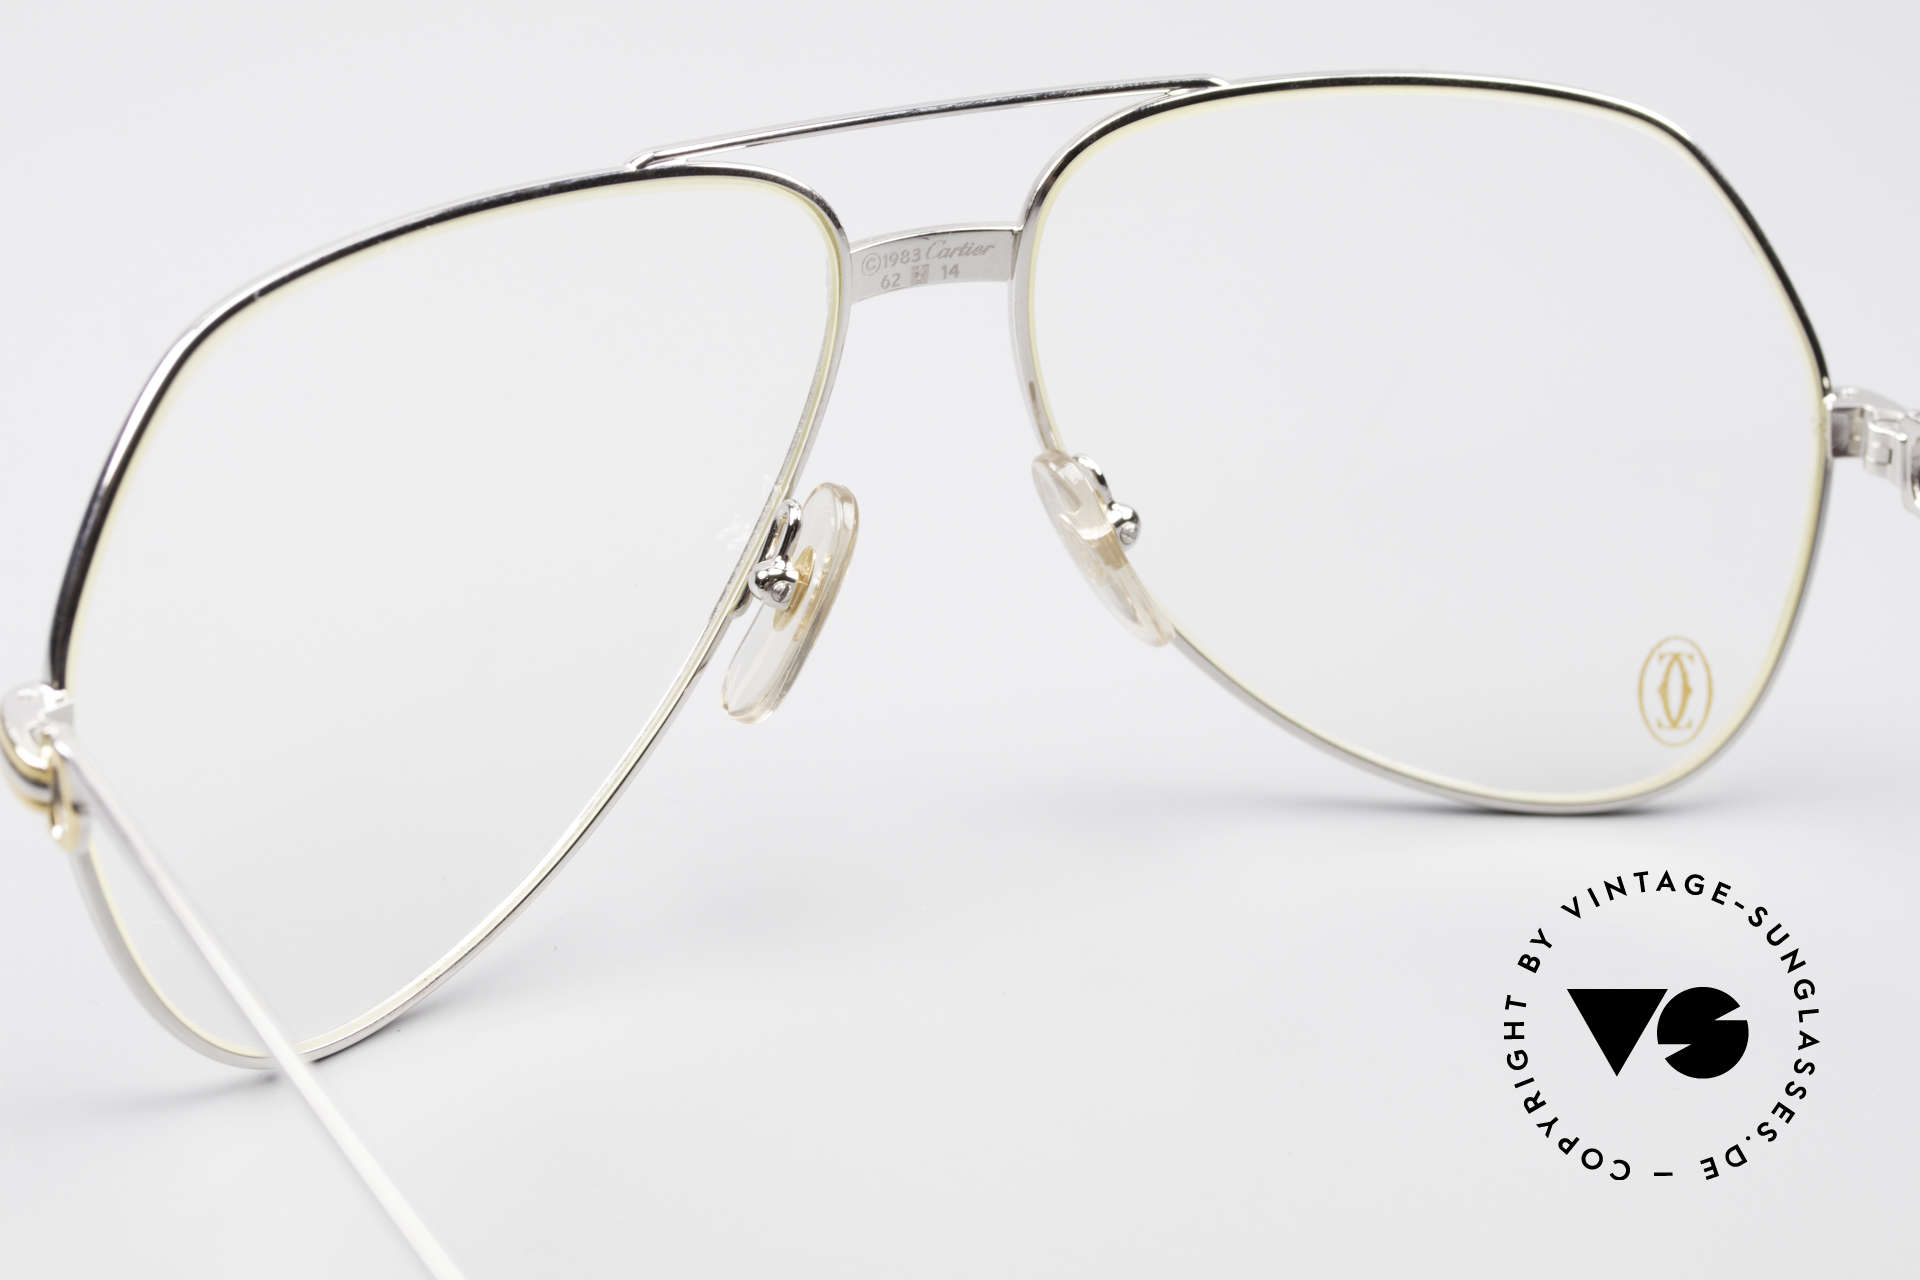 Cartier Vendome LC - L Platinum Finish Frame Luxury, rare & expensive edition with platinum finish; LUXURY!, Made for Men